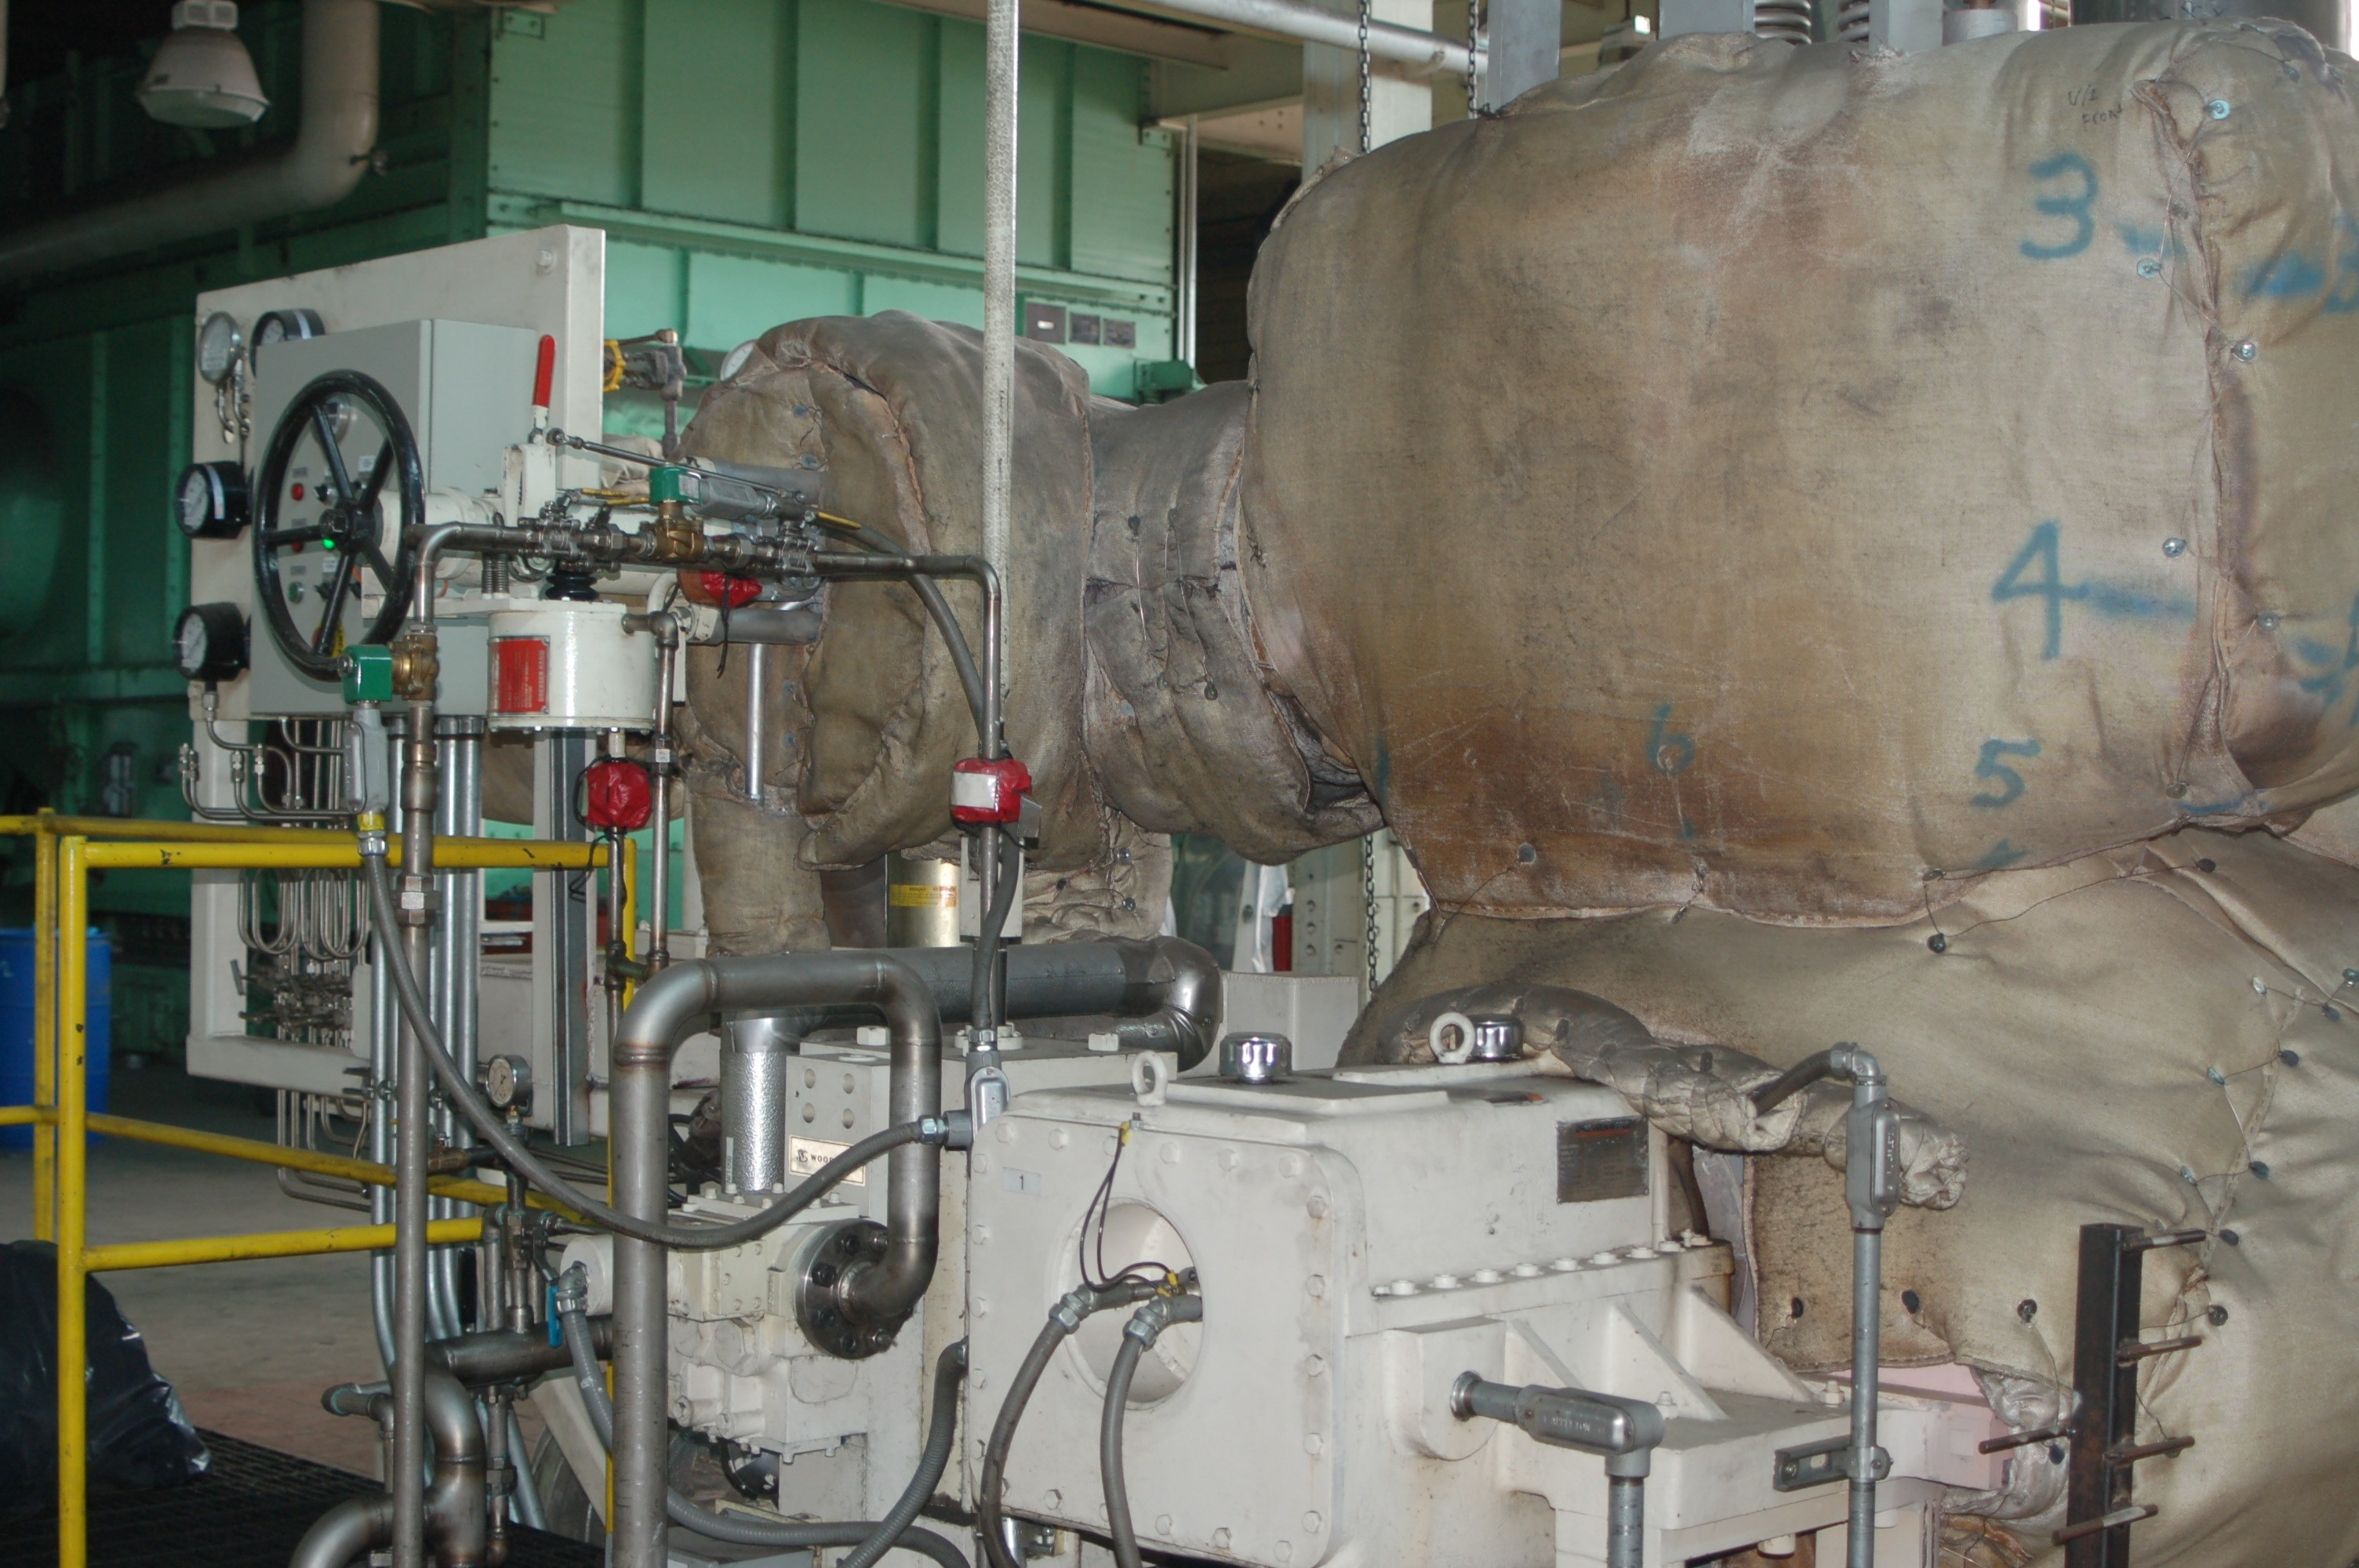 7 MW Dresser Rand Steam Turbine Generator